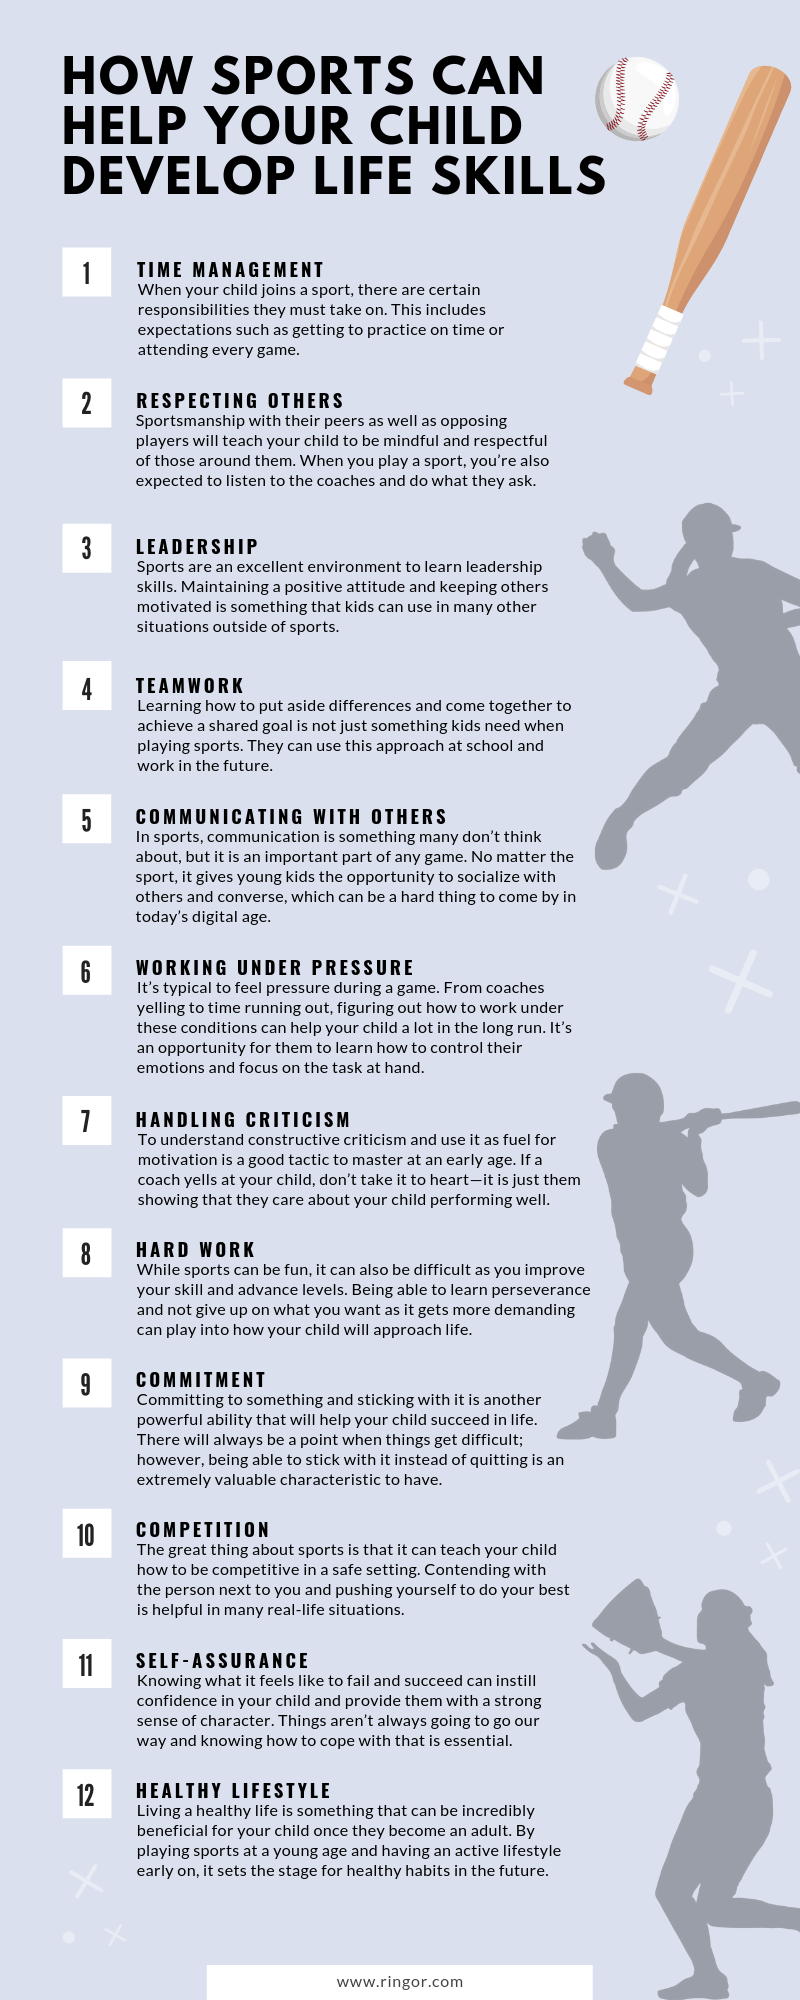 How Sports Can Help Your Child Develop